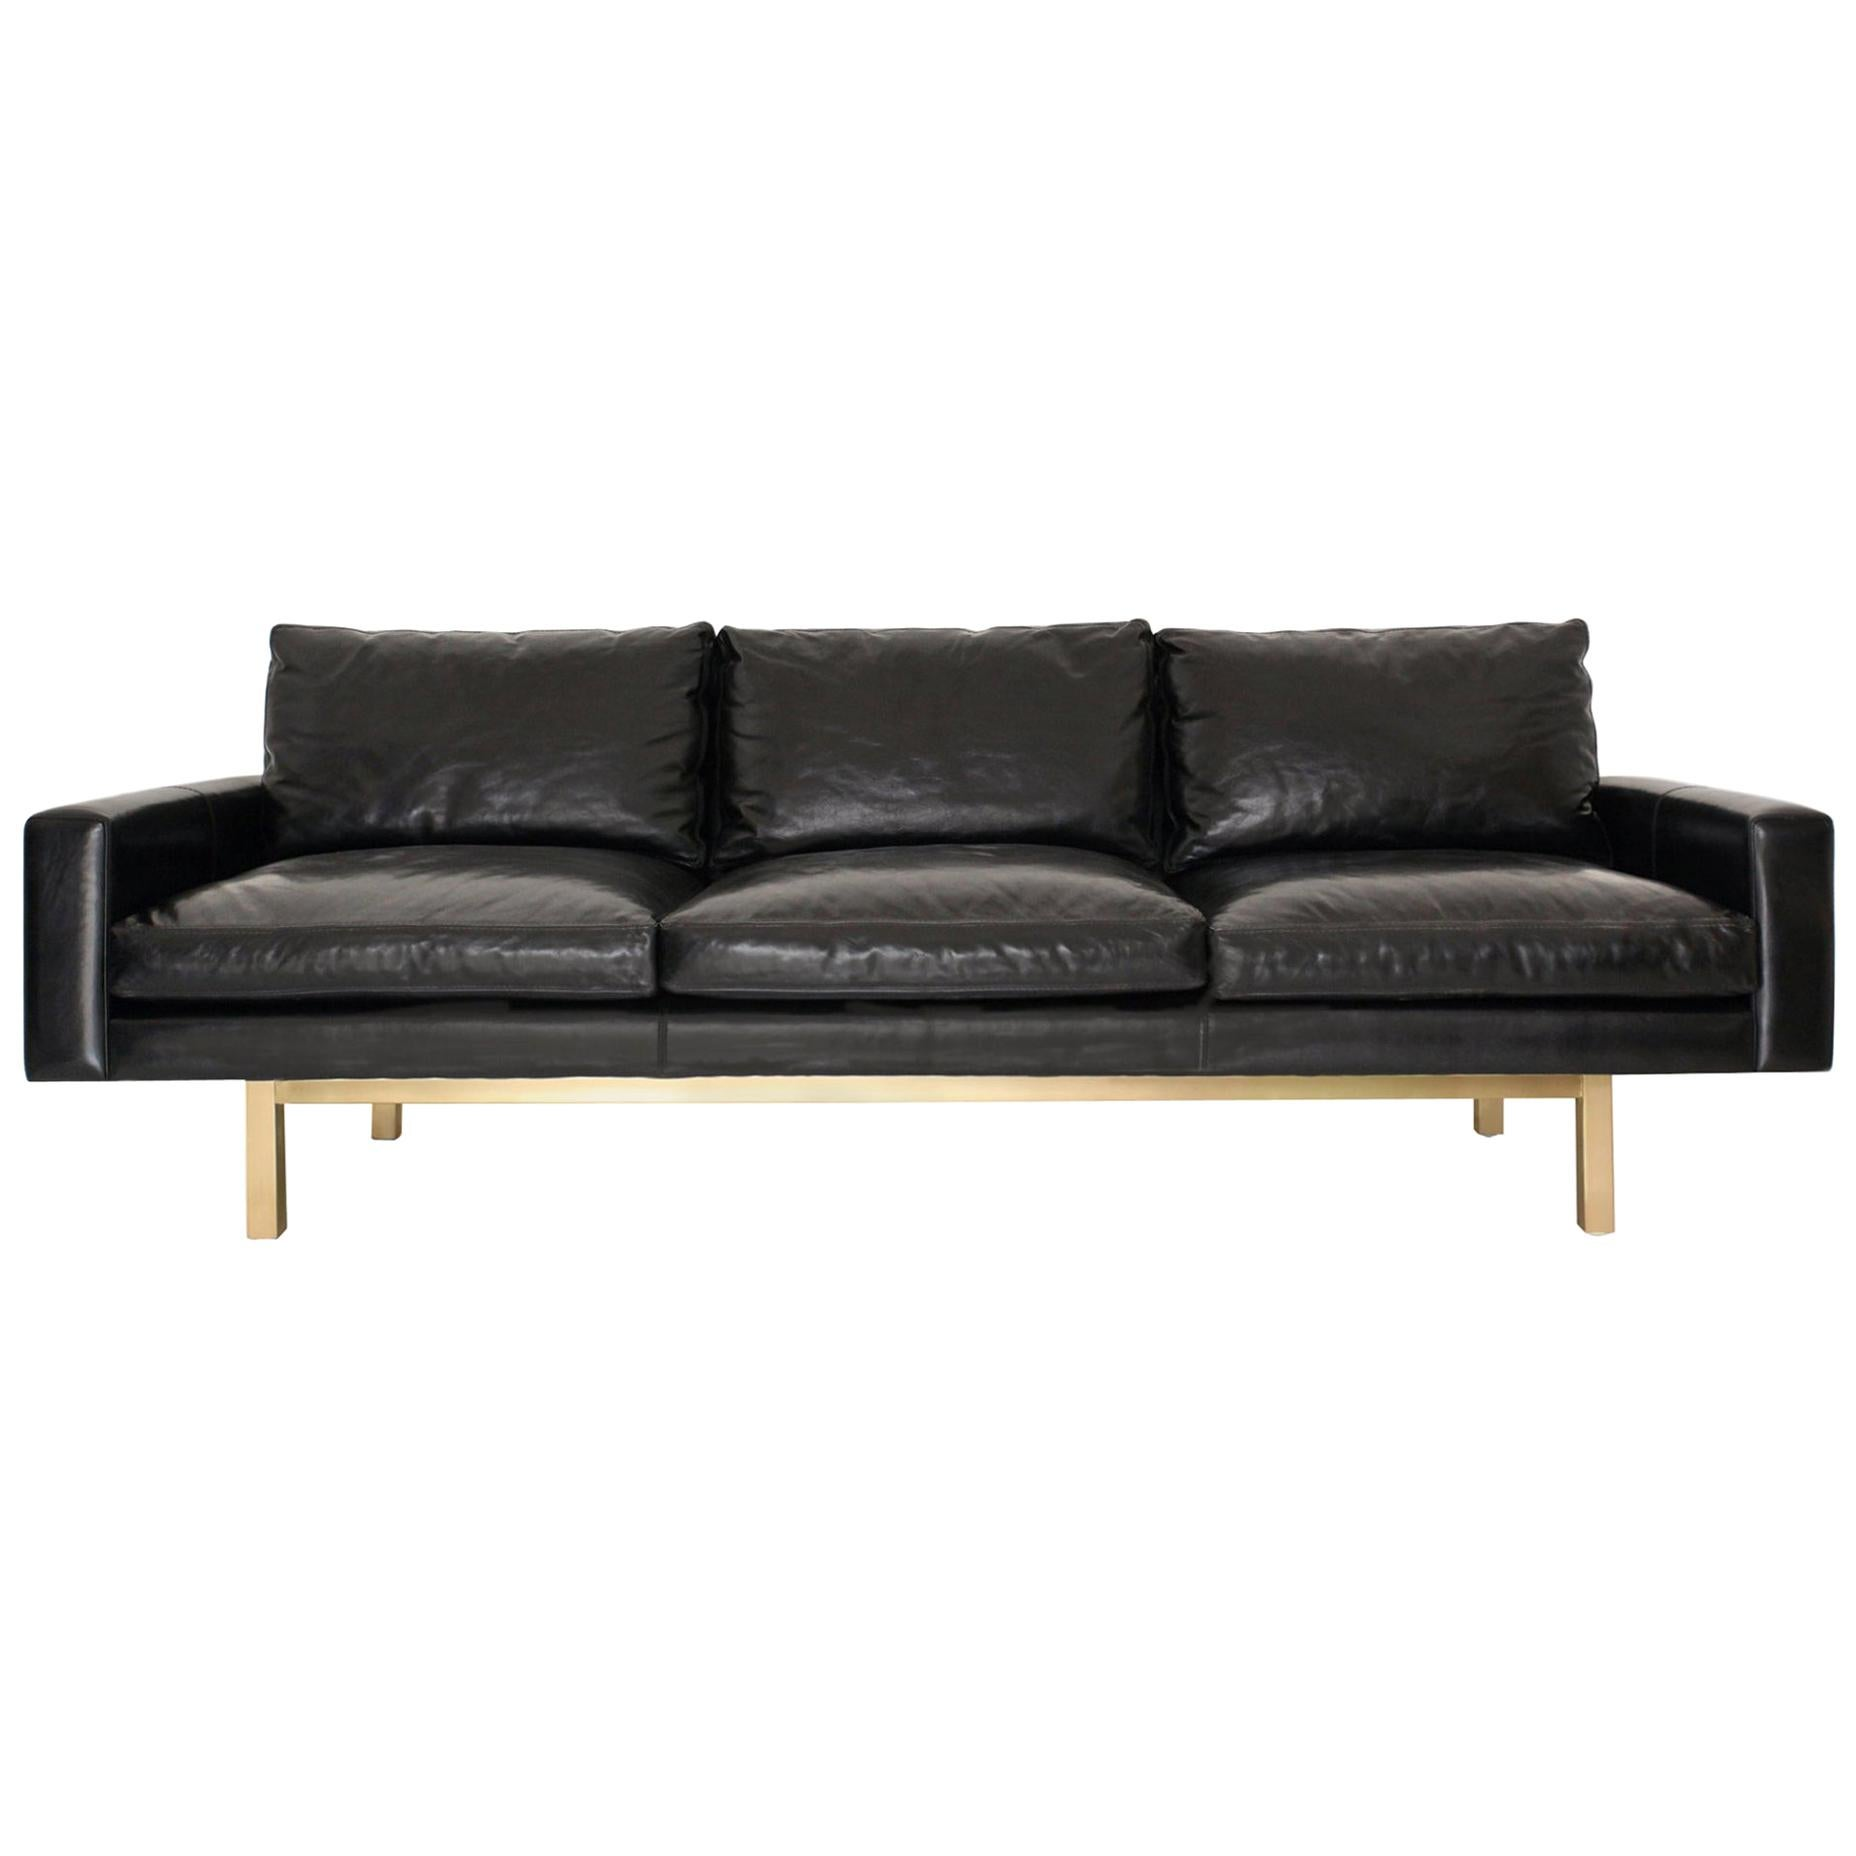 Contemporary Large Standard Sofa in Black Leather with Brass Base